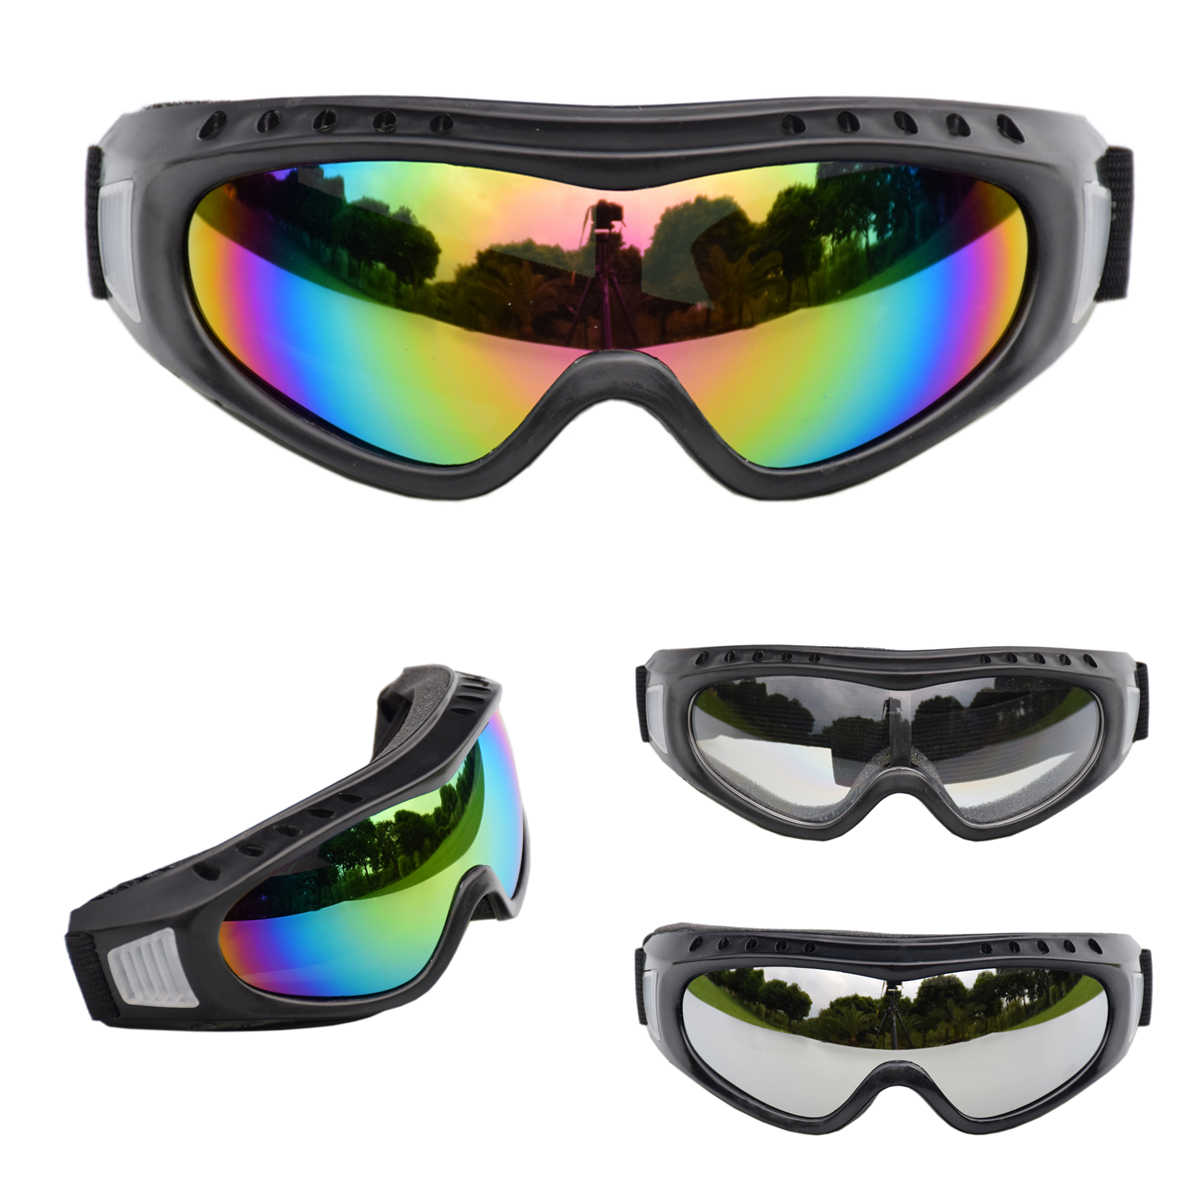 Ski Goggles Eyewear Anti-UV Windproof PC Lens Anti-fog Sand Protective Winter Youth Kids Sports Goggles Skiing Eyewear